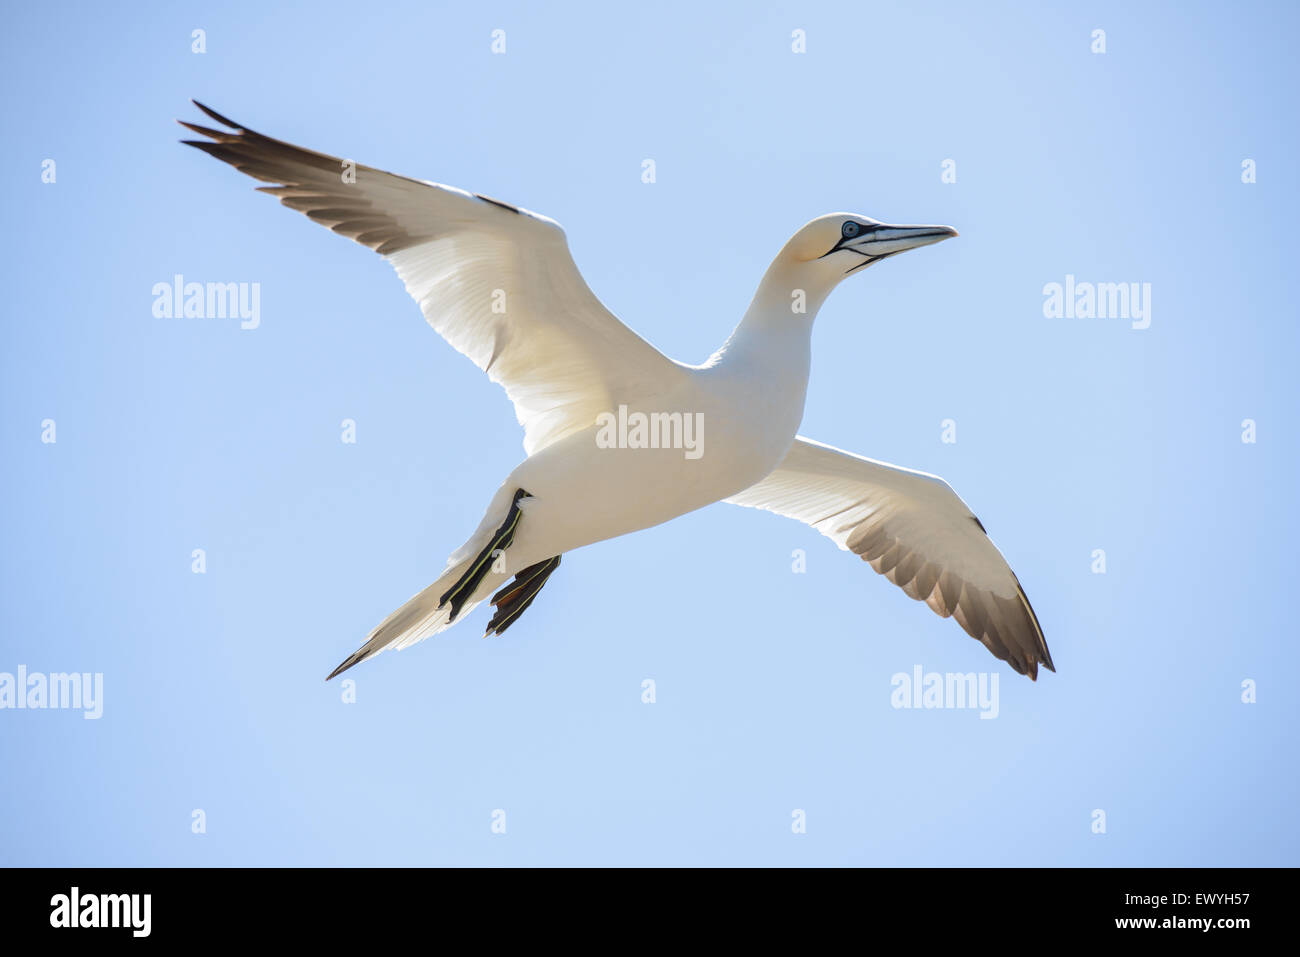 Northern gannet flying in the sky - Stock Image